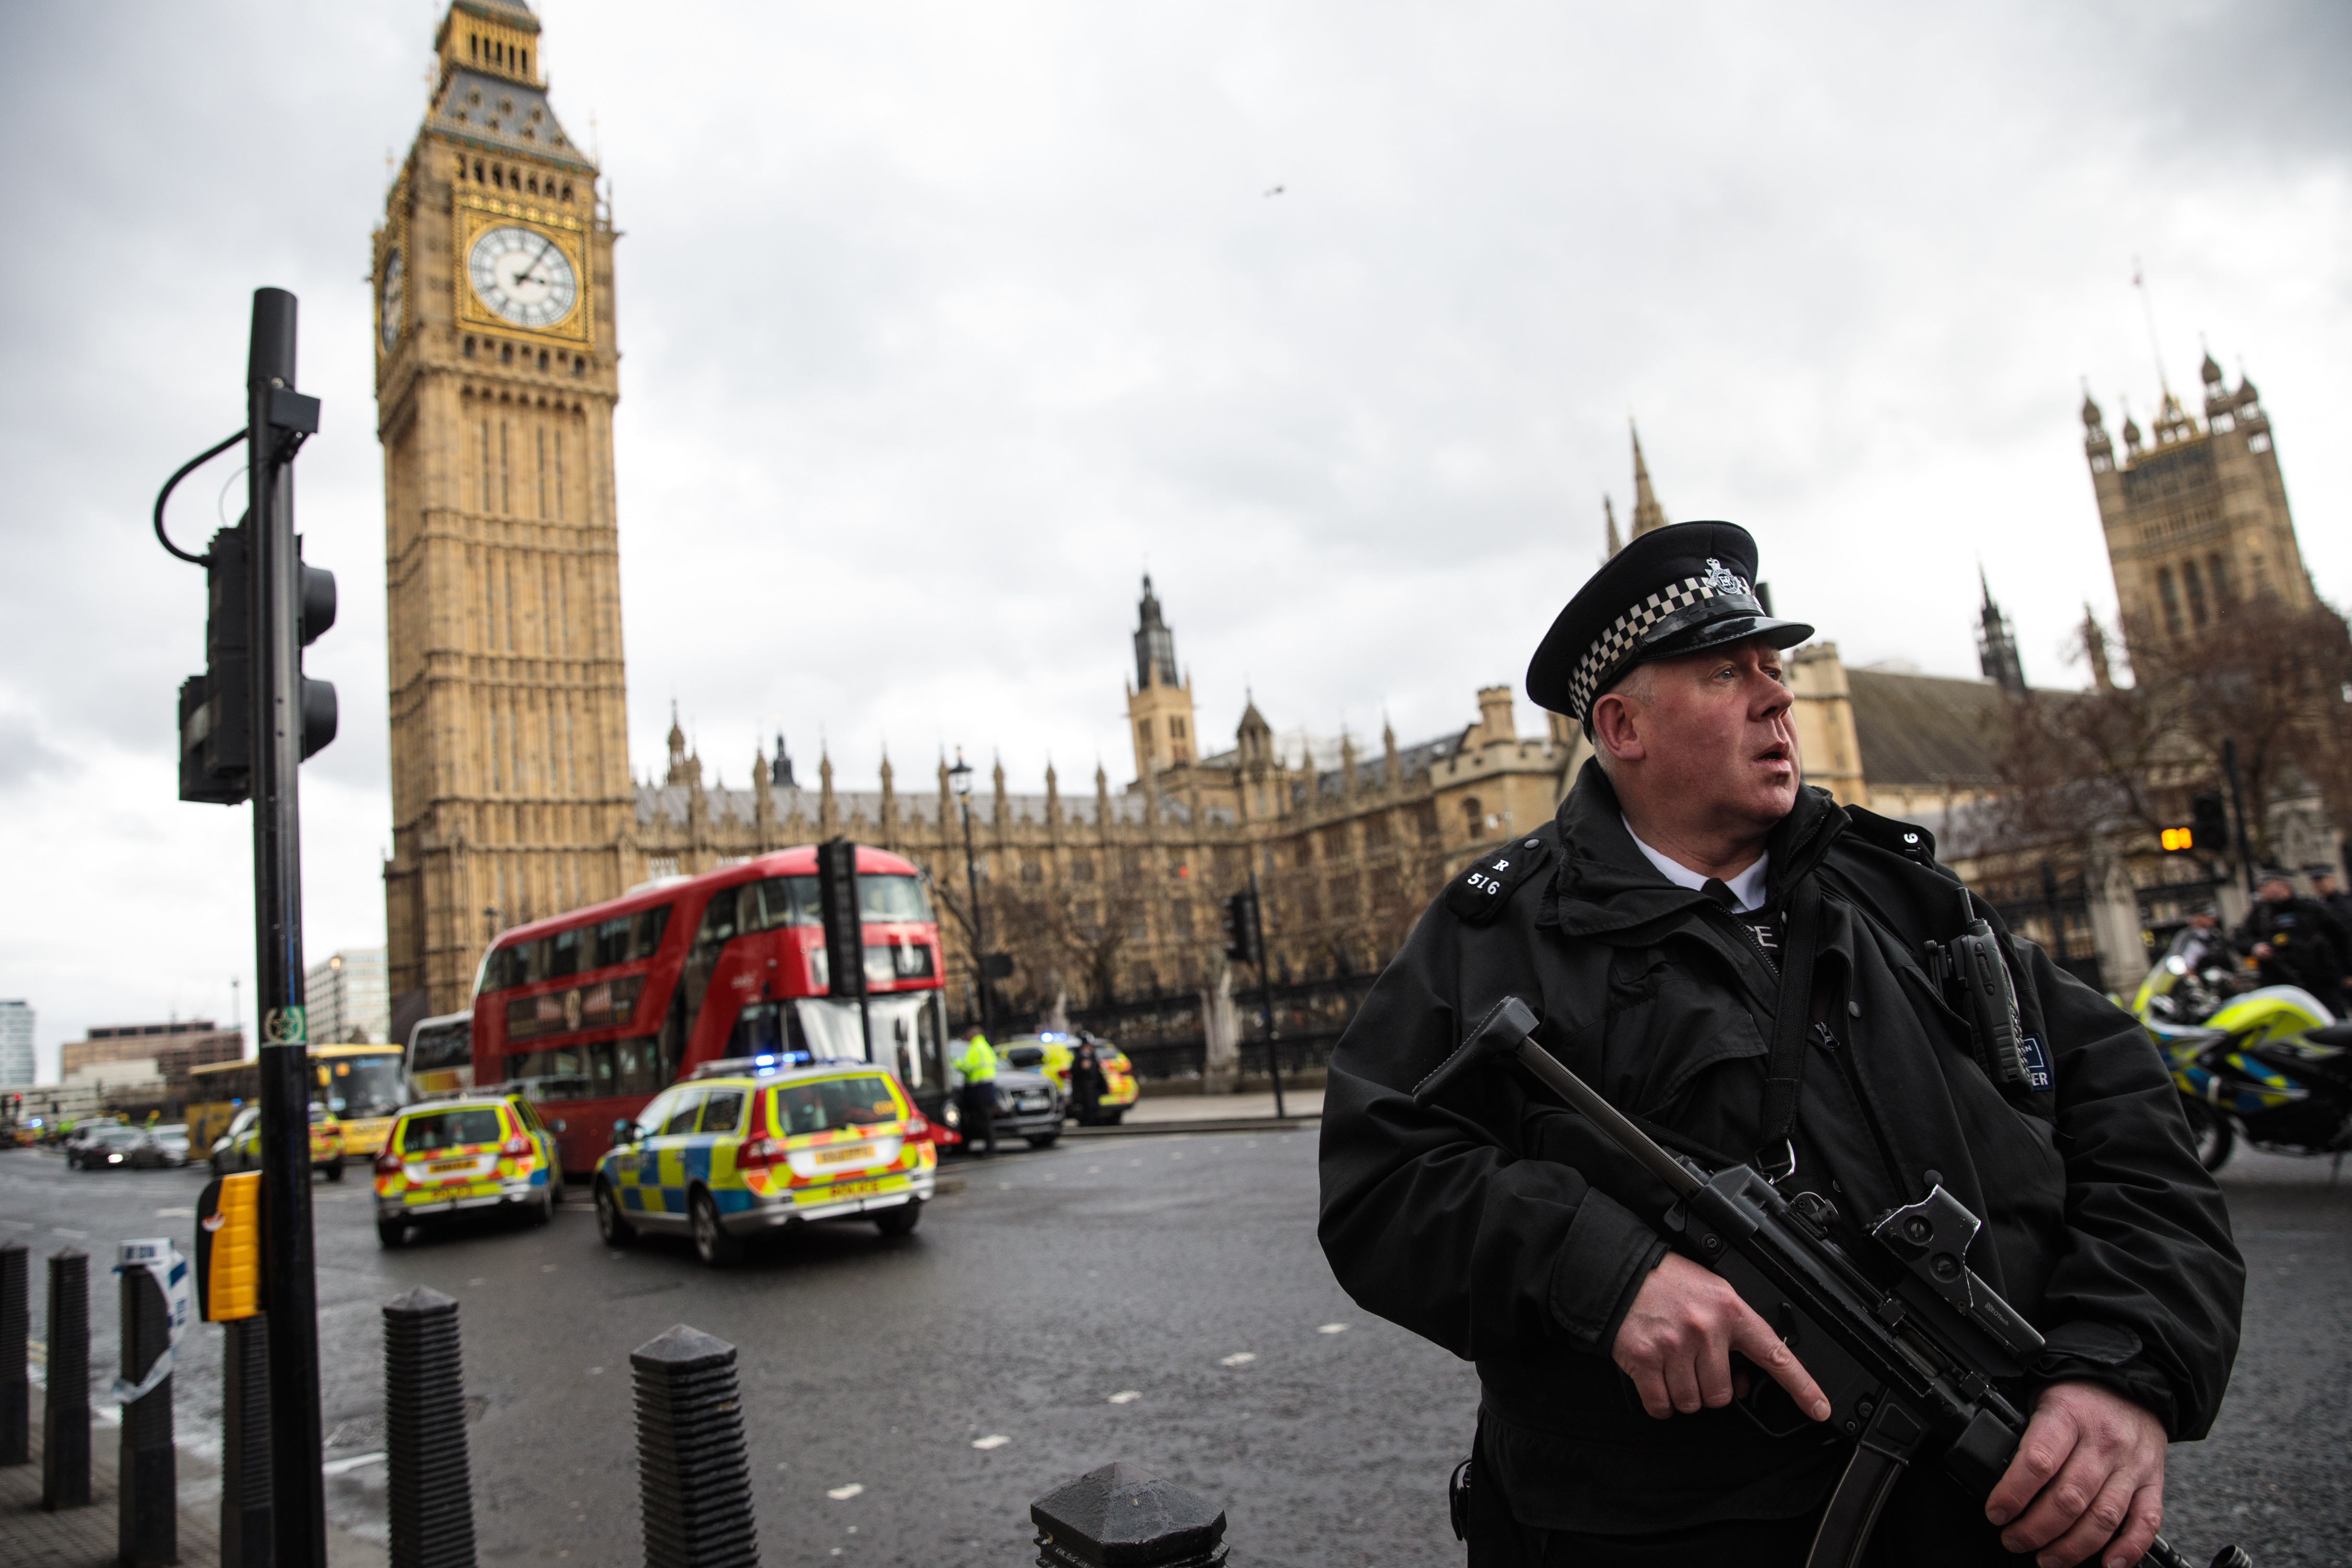 An armed police officer stands guard near Westminster Bridge and the Houses of Parliament on March 22, 2017, in London, after an attack police are treating as a terrorist incident. (Getty Images)